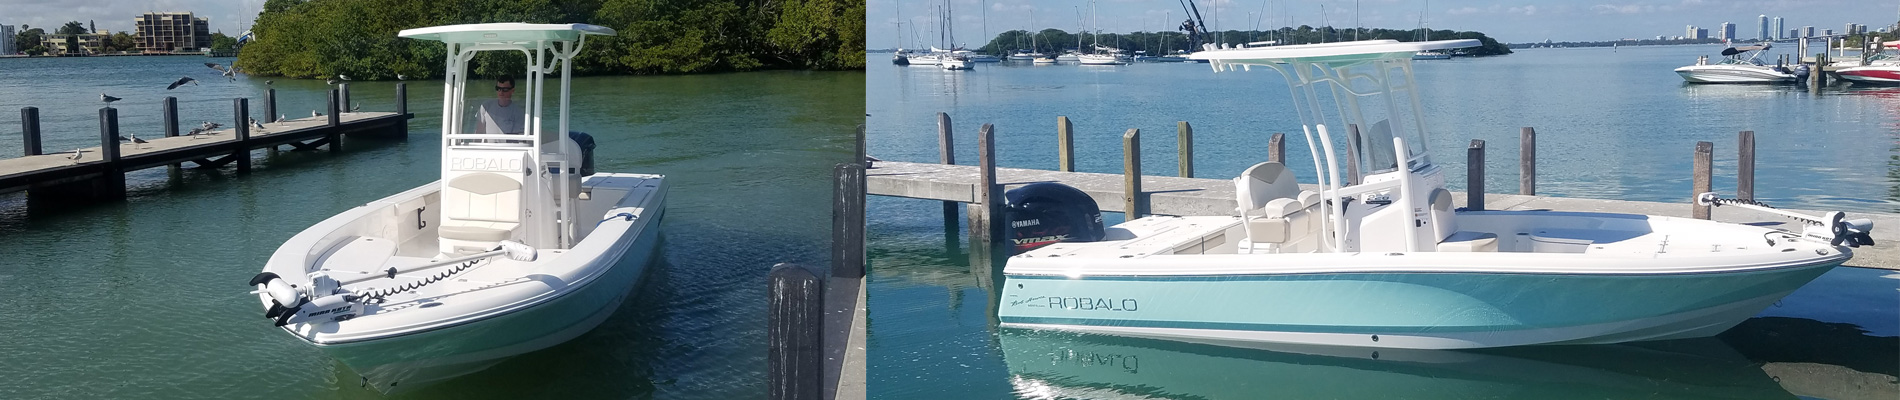 Guided Tours - Biscayne National Park (U.S. National Park ... |Boat Trip Miami Key Biscayne